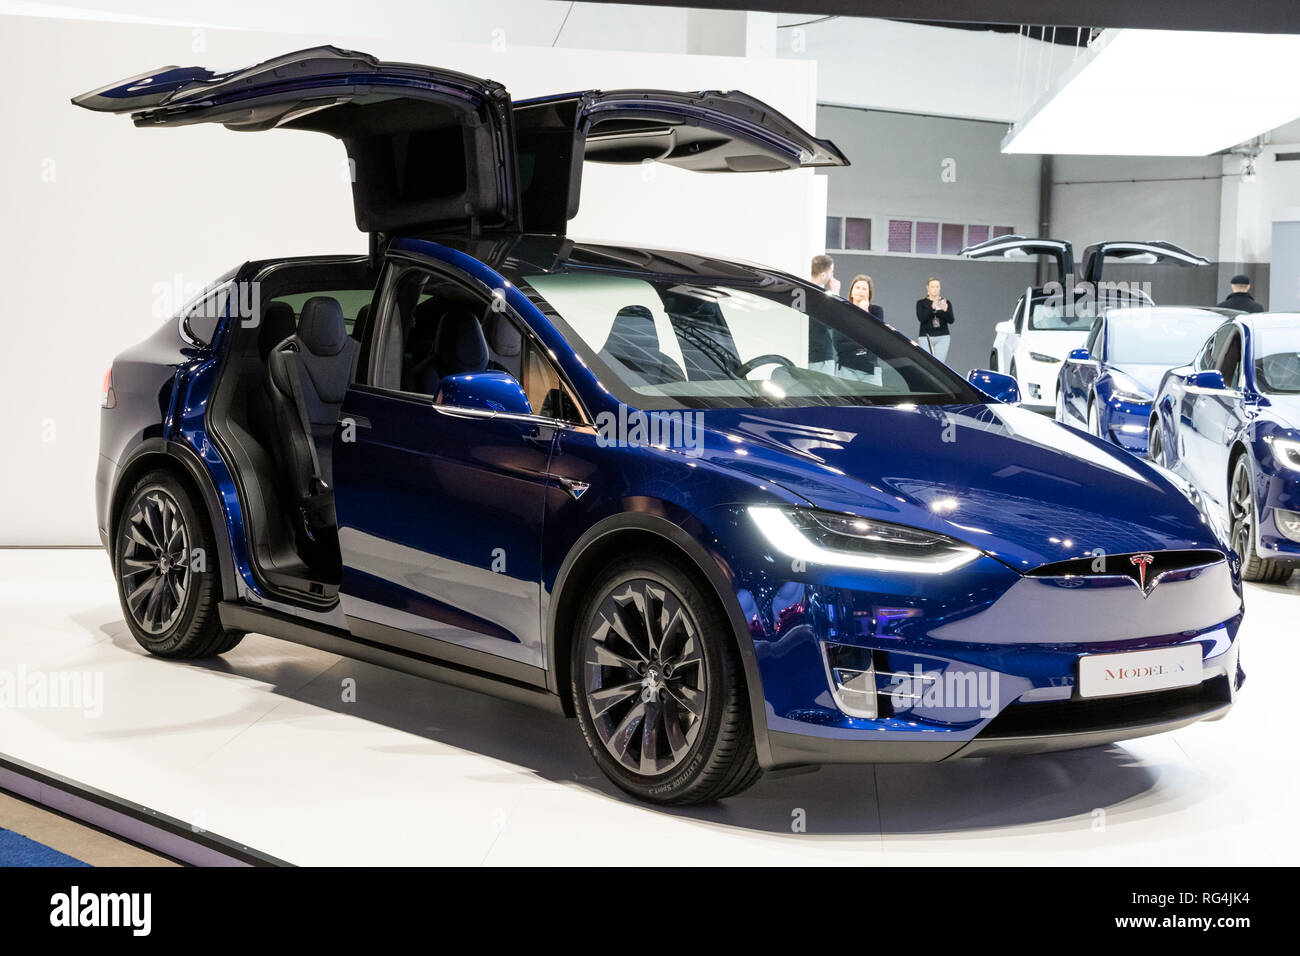 Brussels Jan 18 2019 Tesla Model X Electric Car Showcased At The 97th Brussels Motor Show 2019 Autosalon Stock Photo Alamy